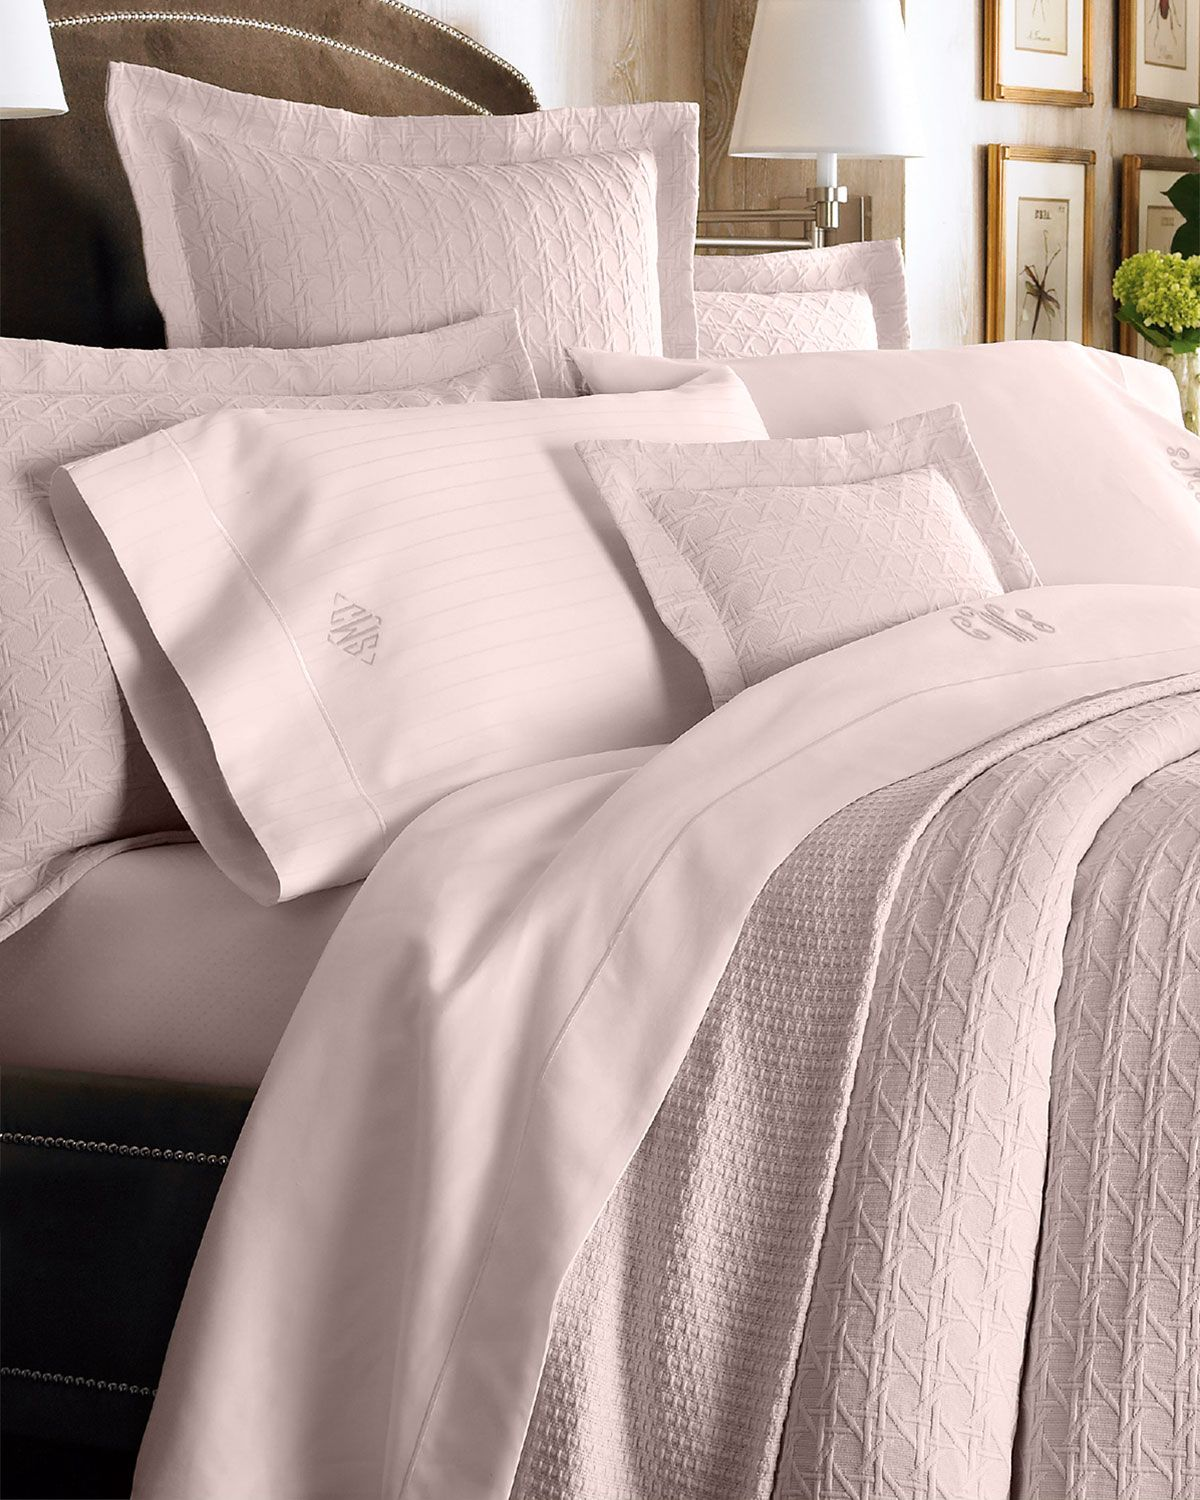 King Marcus Collection Cane Matelasse Coverlet Home Bedrooms